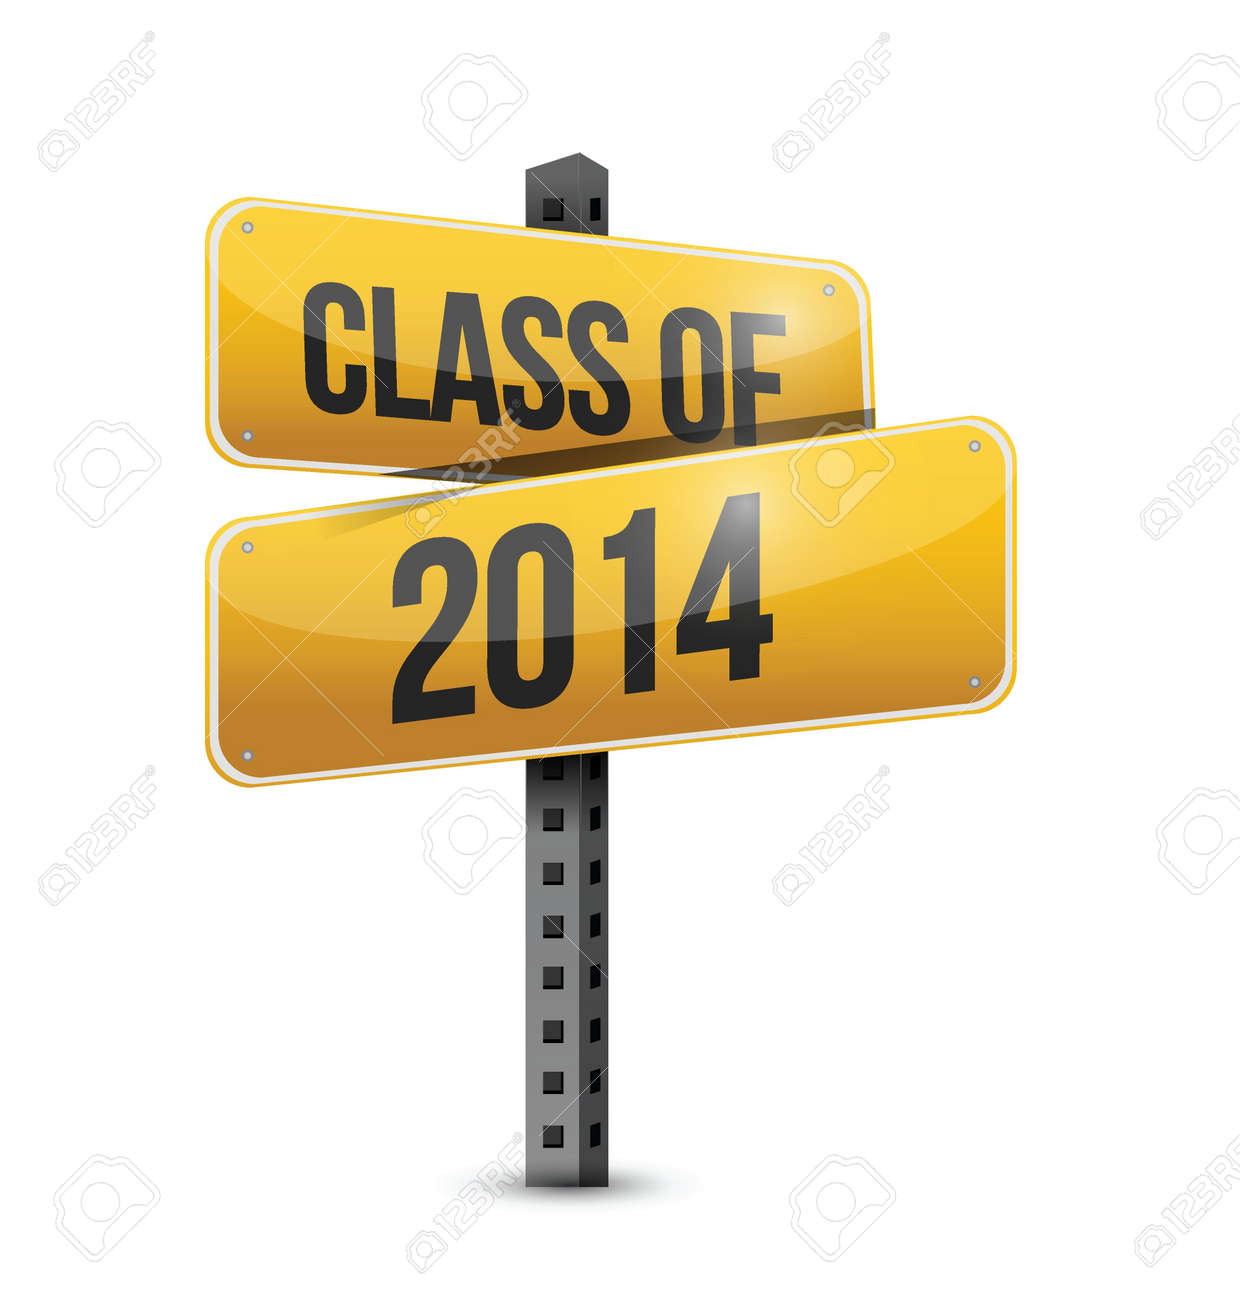 Graduating Class Of 2014 Backgrounds class of 2014 road sign